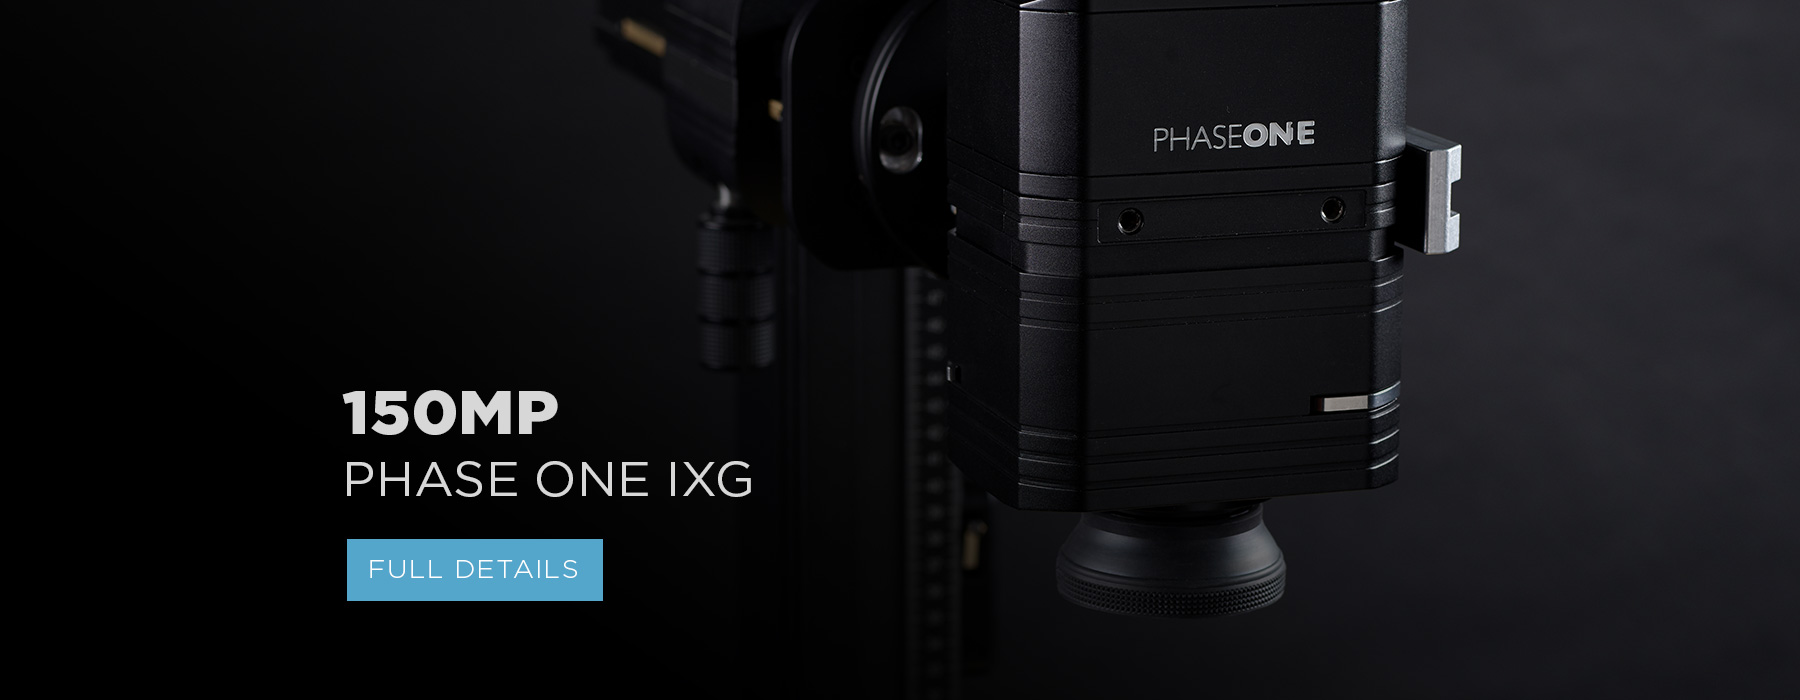 Phase one 150mp ixg